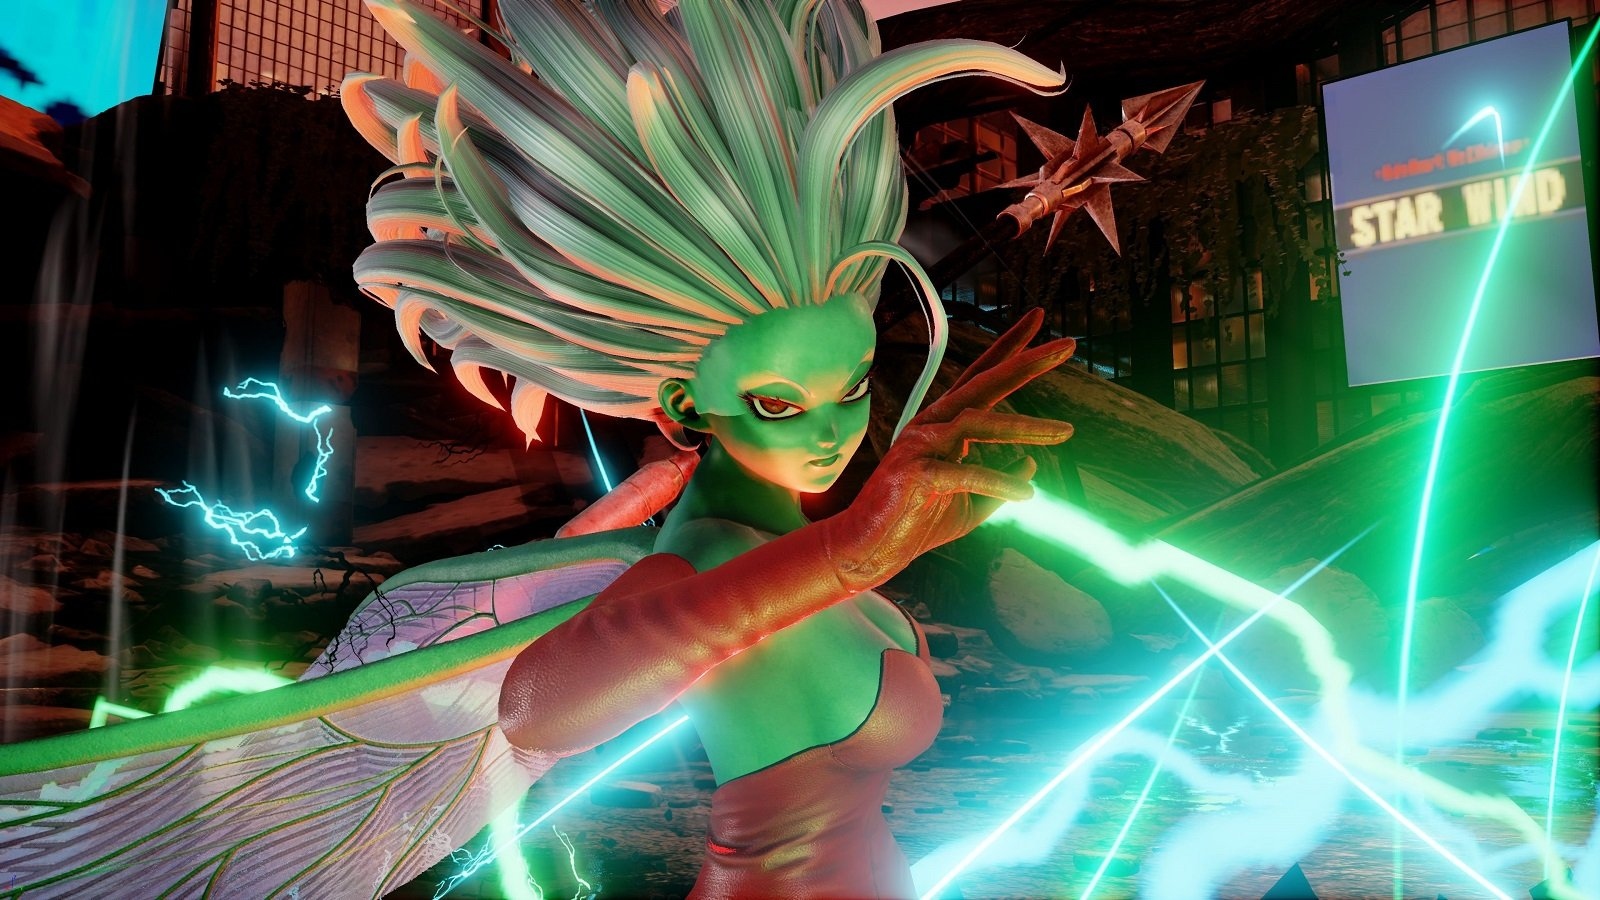 While uninspired, the story does its best at demystifying the Jump Force concept.